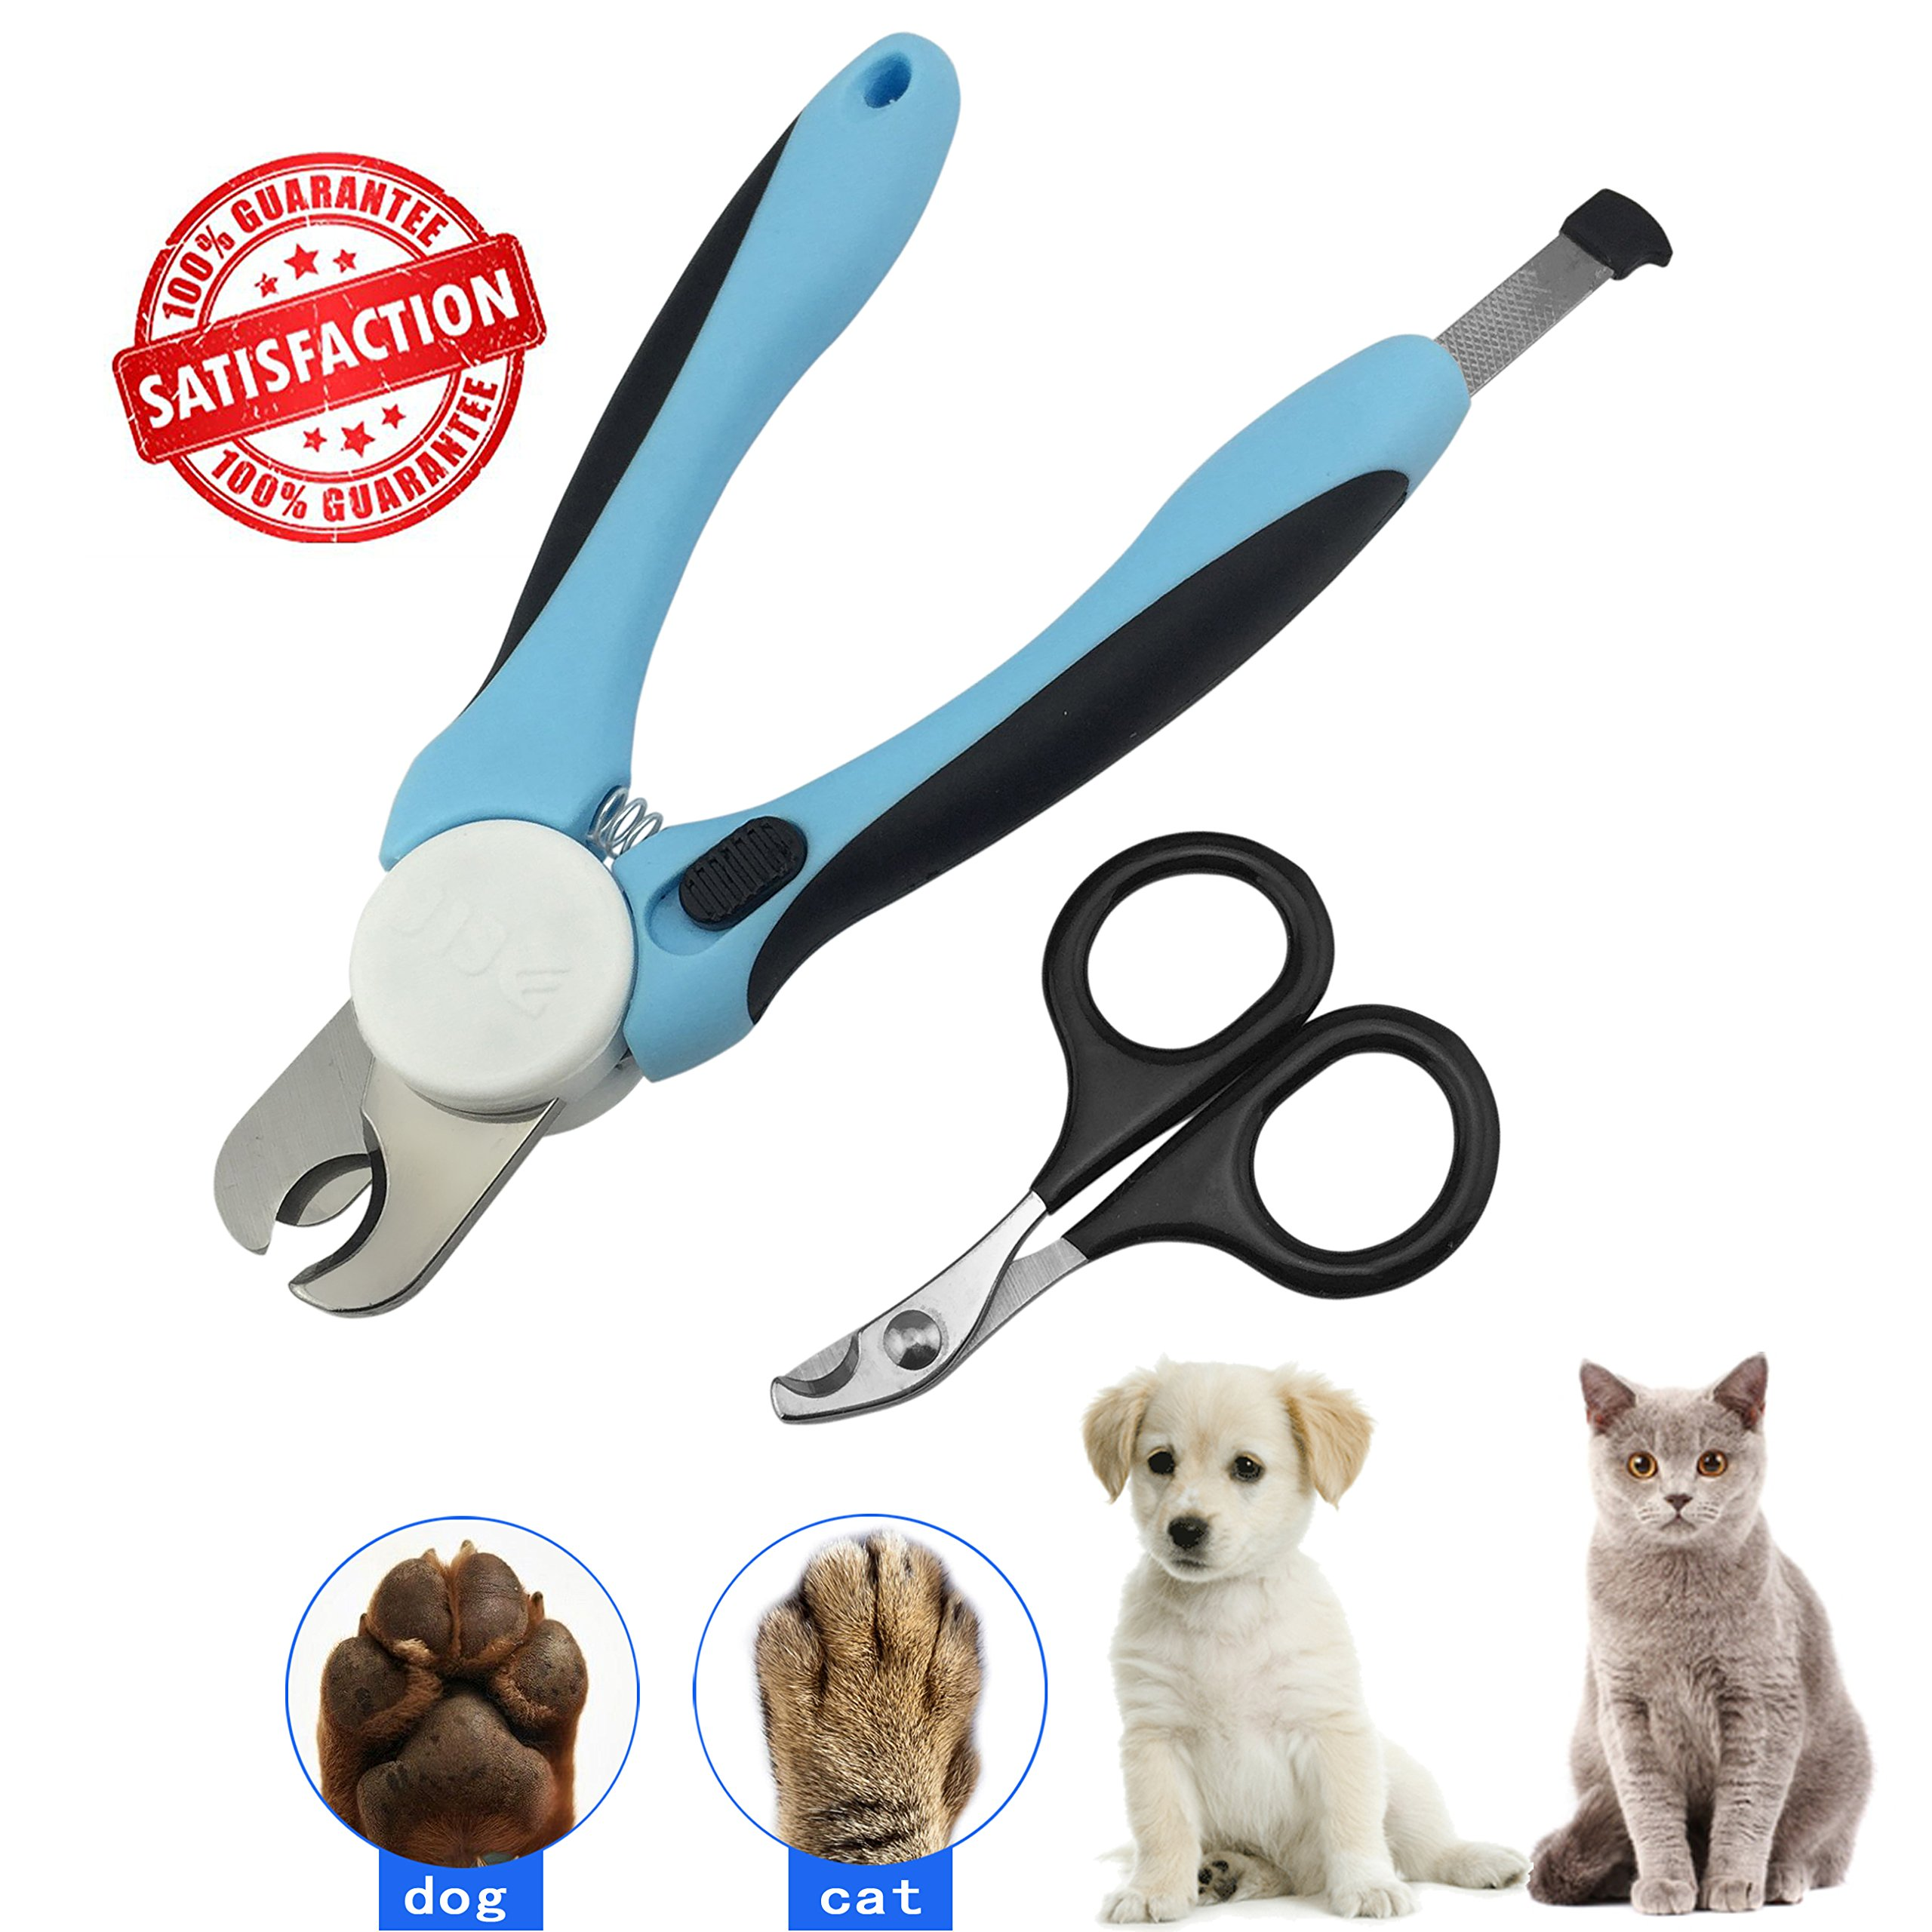 Pet Dog Cat Nail Clippers Designed By Sysrion - Free Nail File - Razor Sharp .. 12